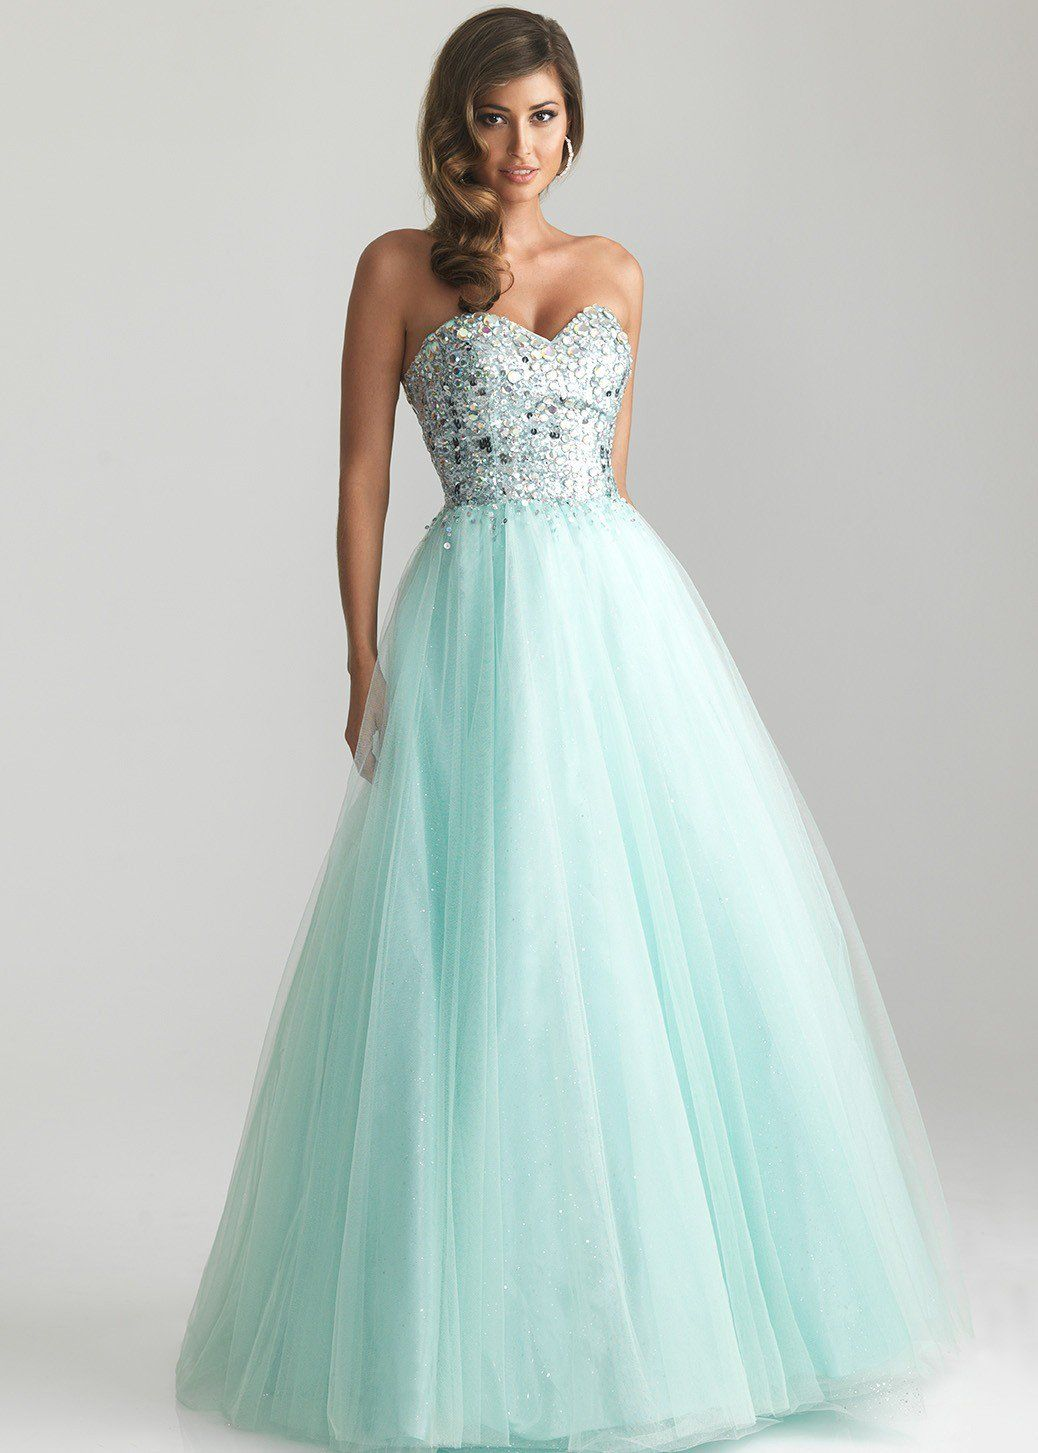 Cute,prom or formal dress! | Me | Pinterest | Turquoise, Gowns and Prom